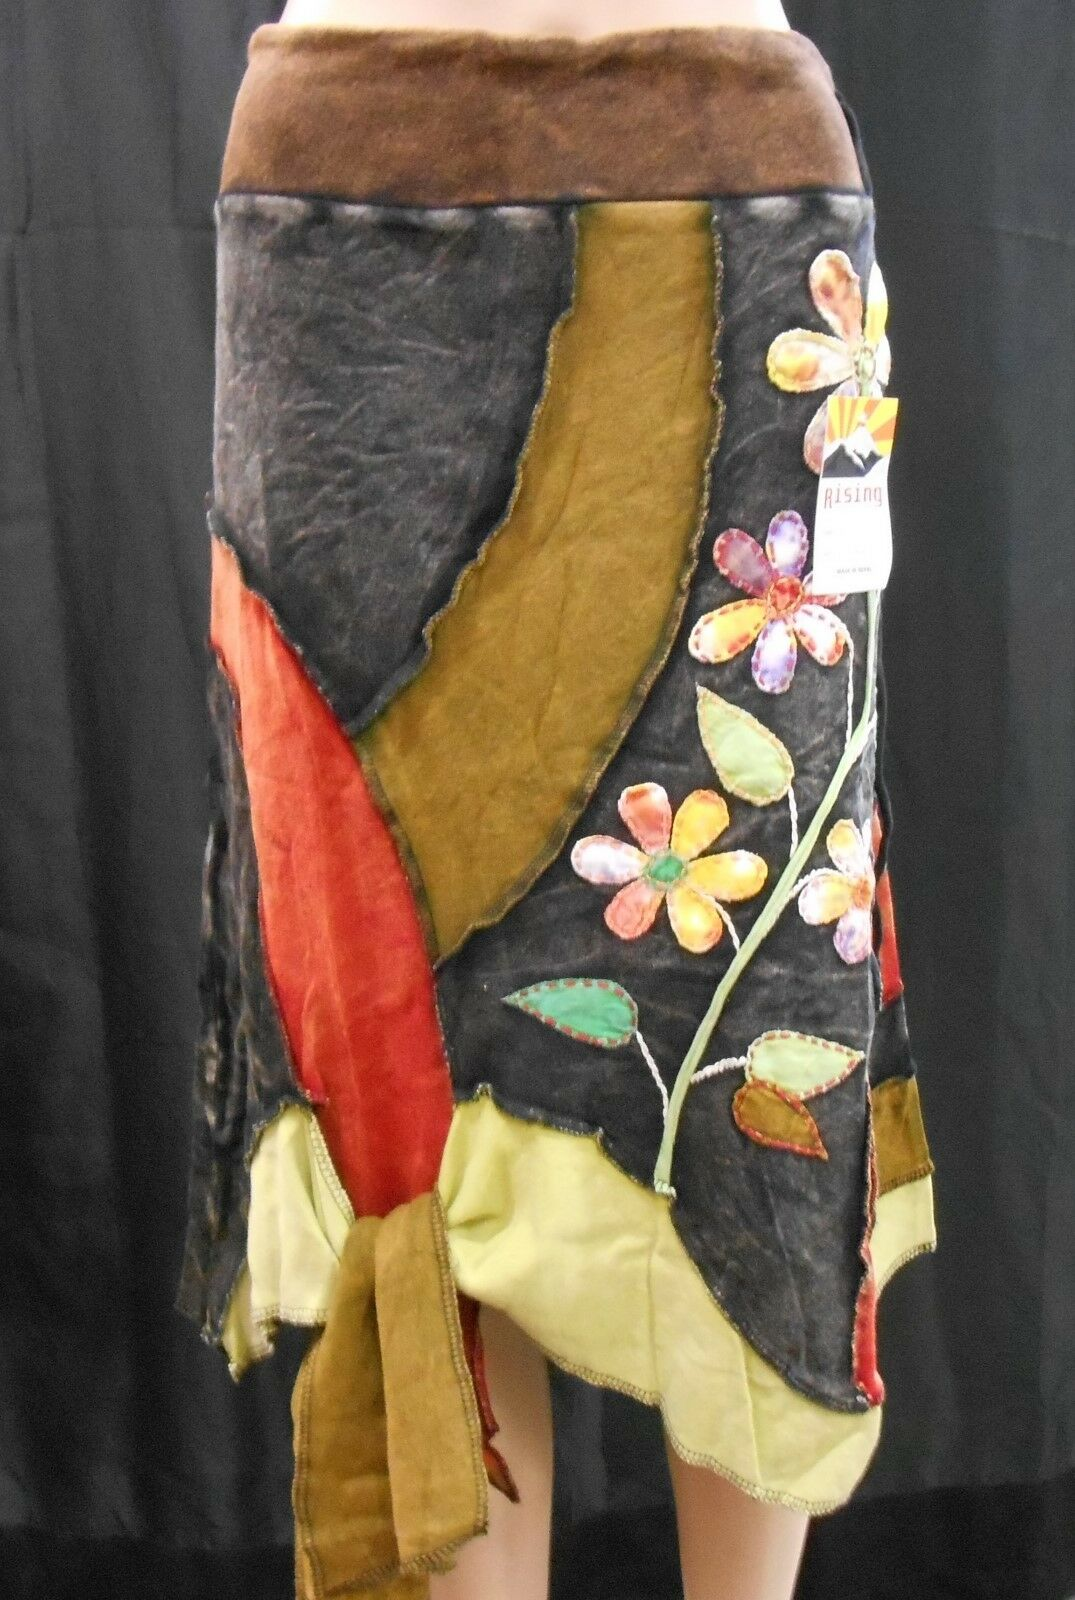 RISING INTERNATIONAL NEPAL Handmade SKIRT Multi-color FLORAL Applique with Tie